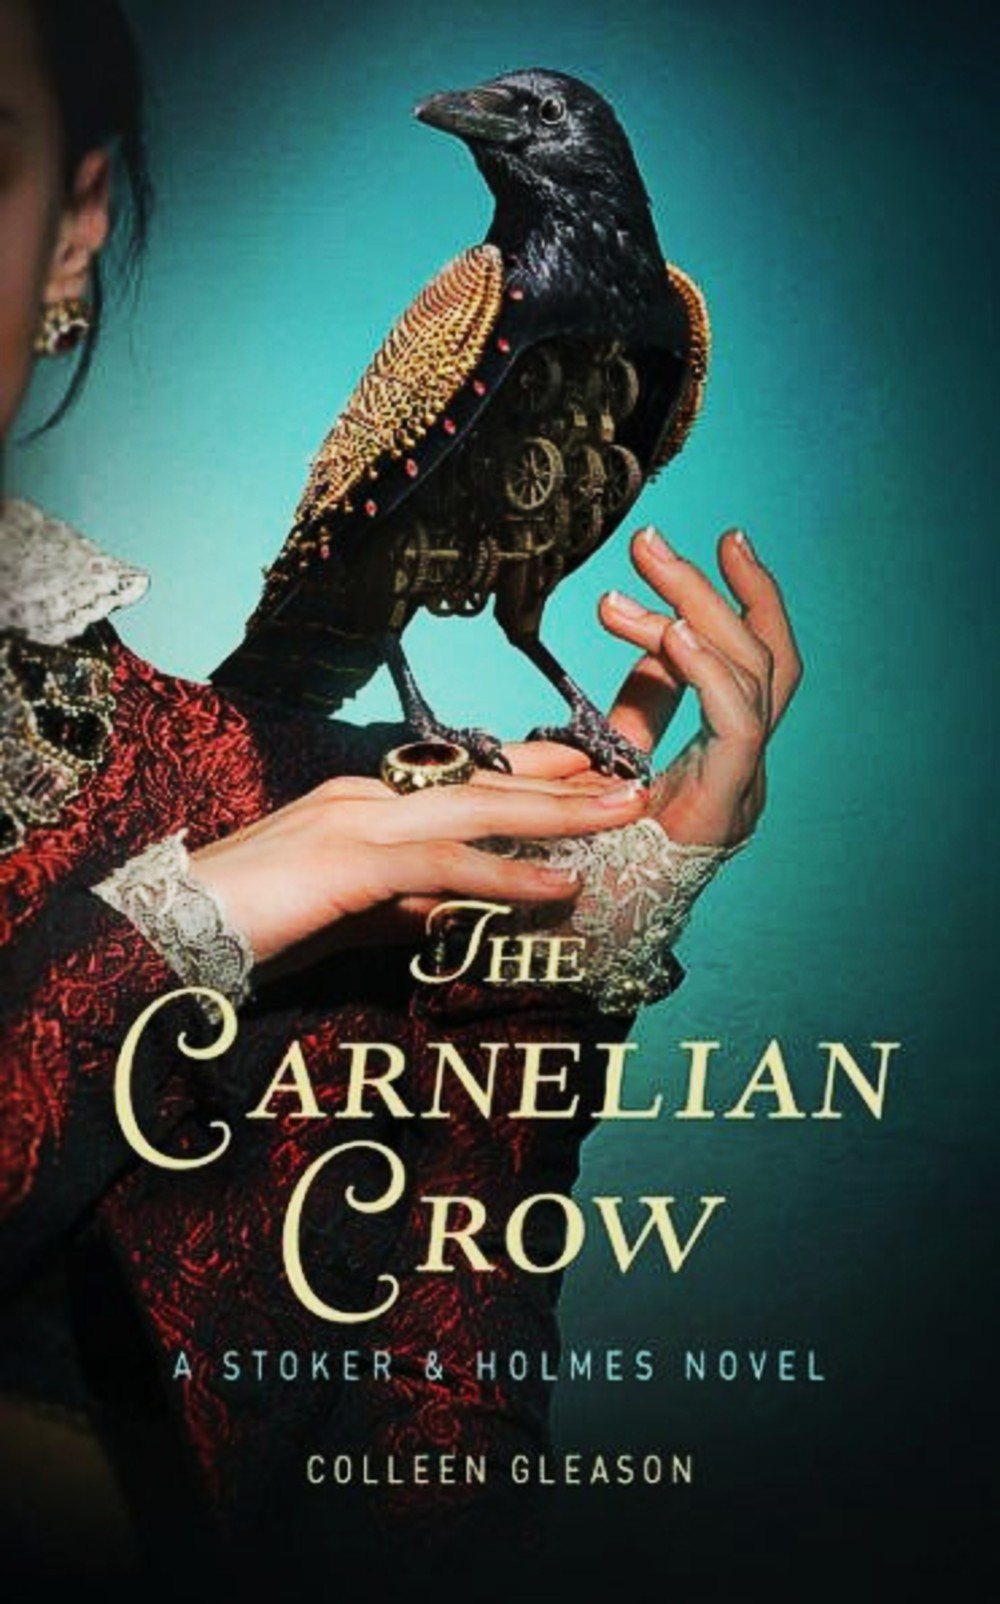 The Carnielian Crow by Colleen Gleason Book Cover.jpg